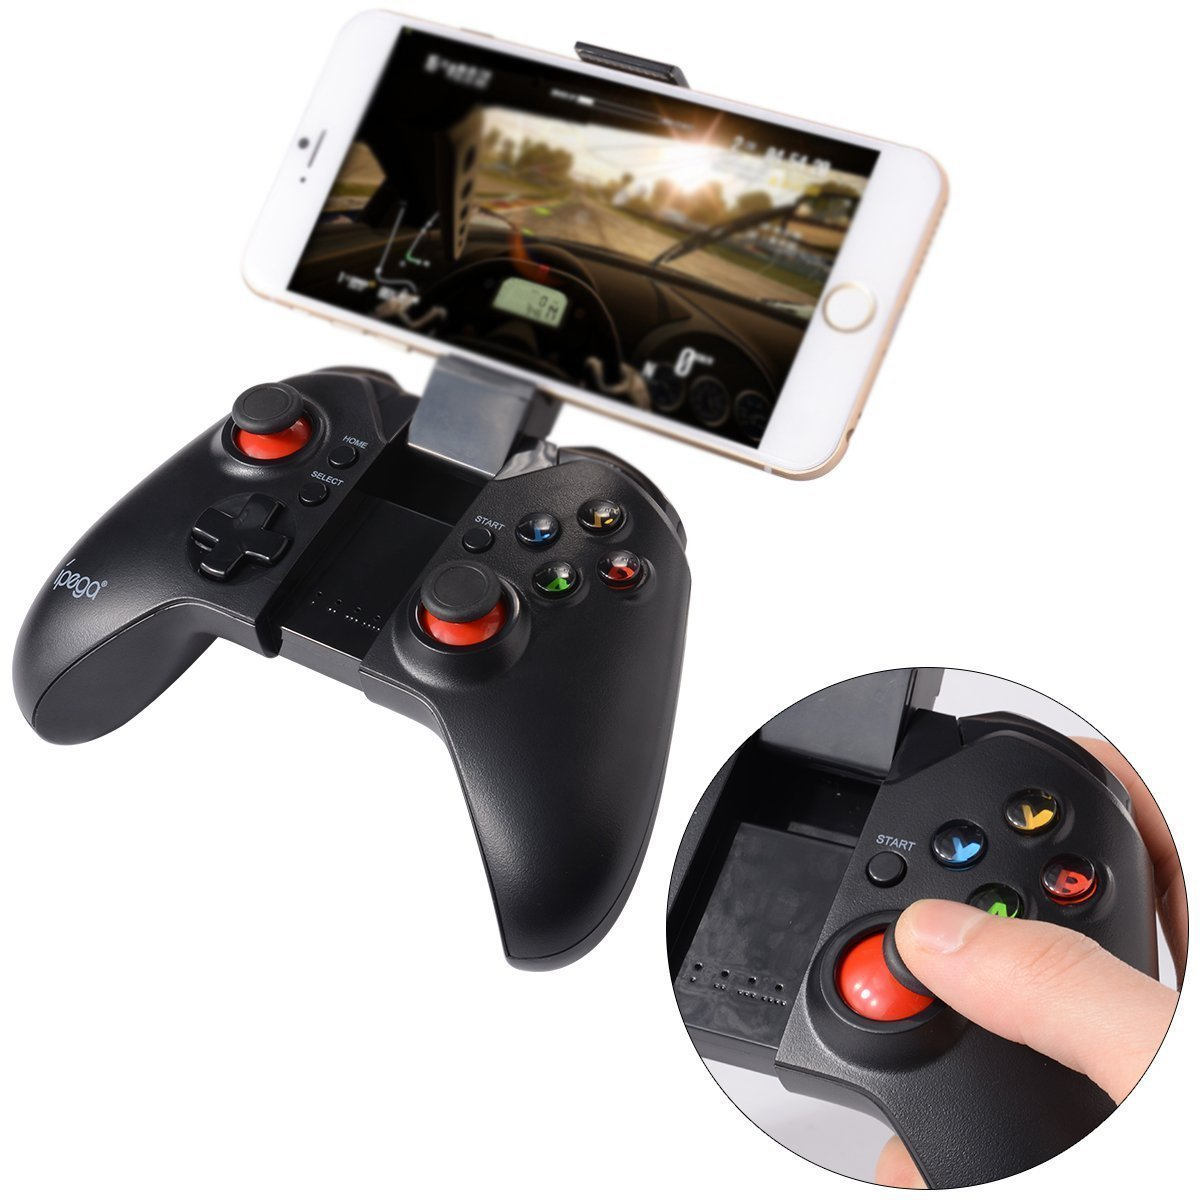 Powmax Gapo Pg 9037 Bluetooth Wireless Classic Gamepad Game Controller With Mouse Function For Samsung Htc Moto Addroid Tv Box Tablet Pc Amazon Com Au Computers Accessories 3 al 2 öde avi̇cenna powmax 30 tablet. amazon com au